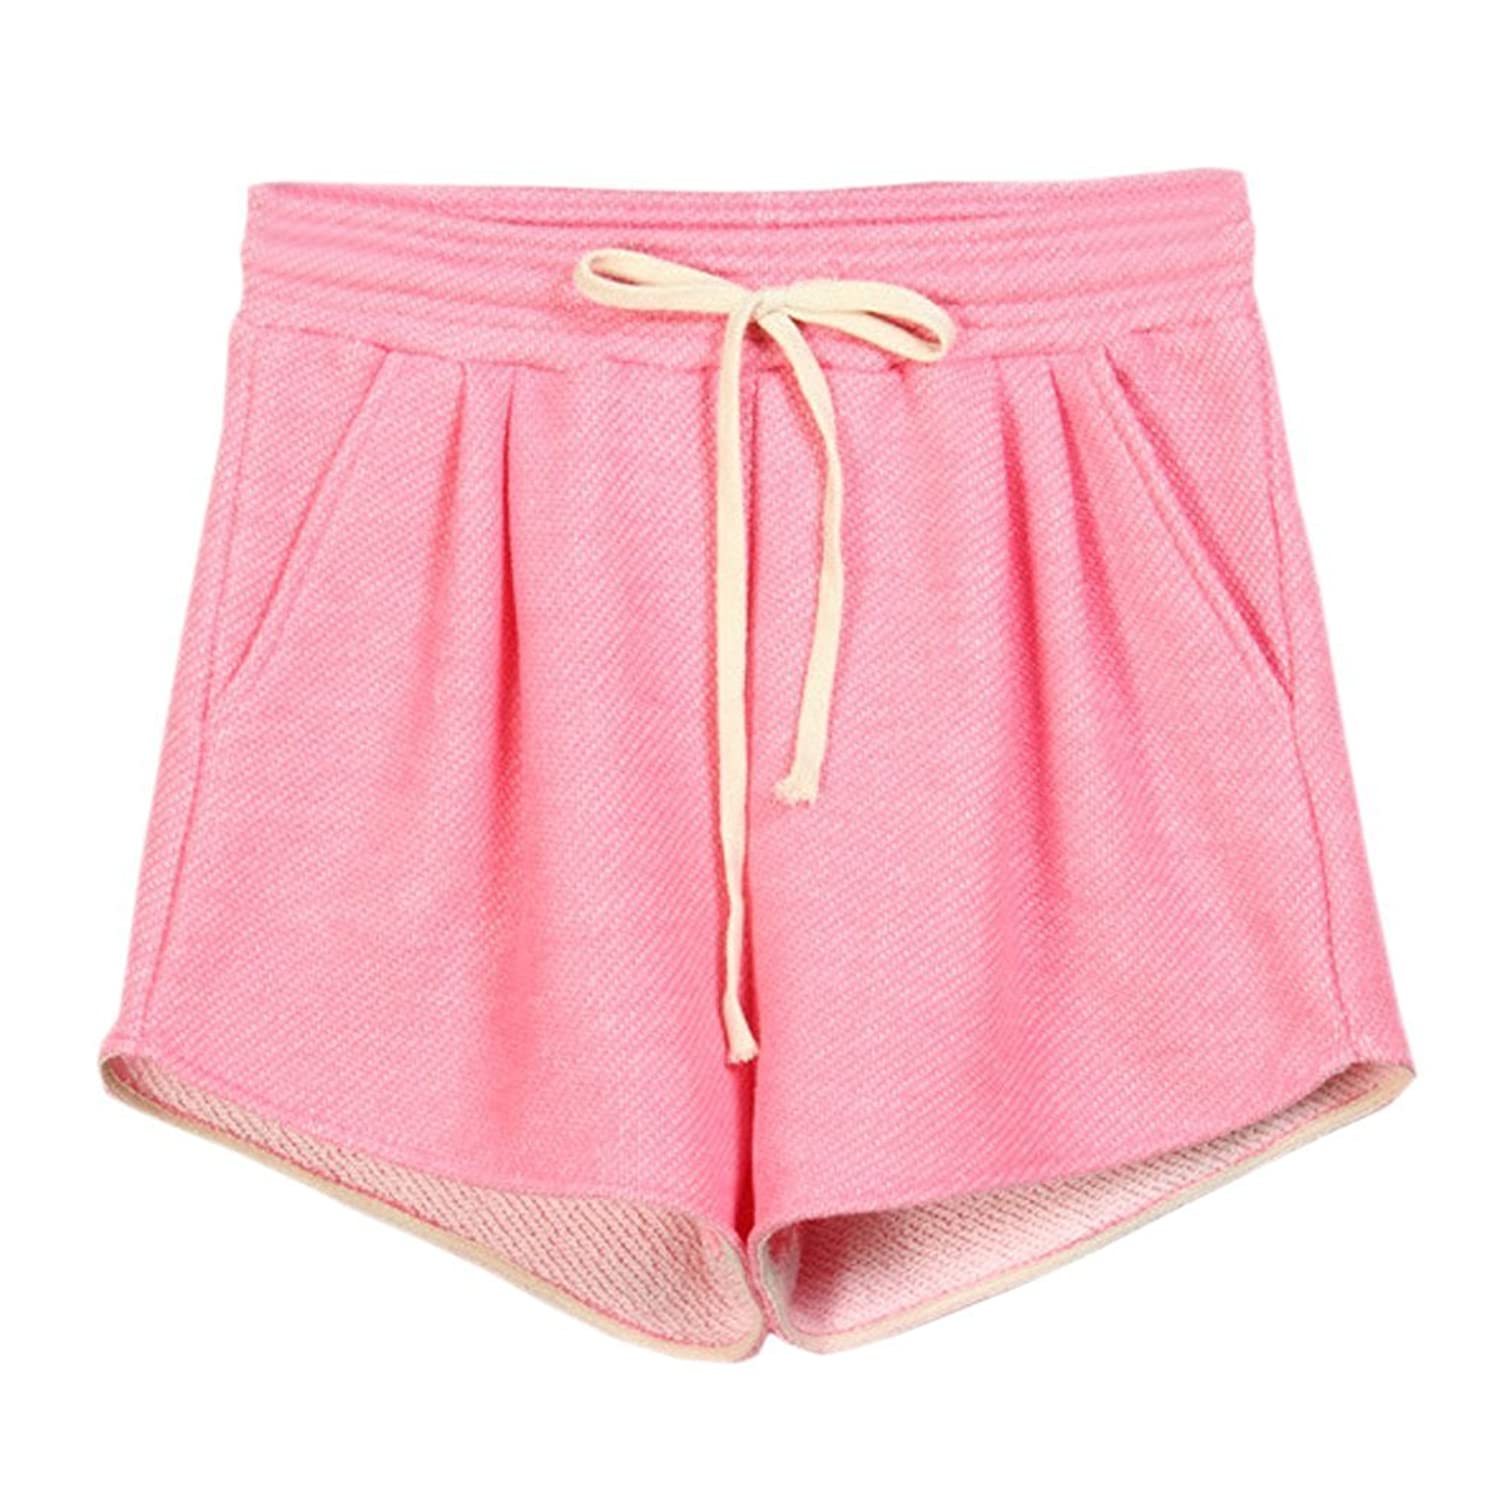 Orient Mystic Women's Casual Comfortable Drawstring Waist French Terry Shorts